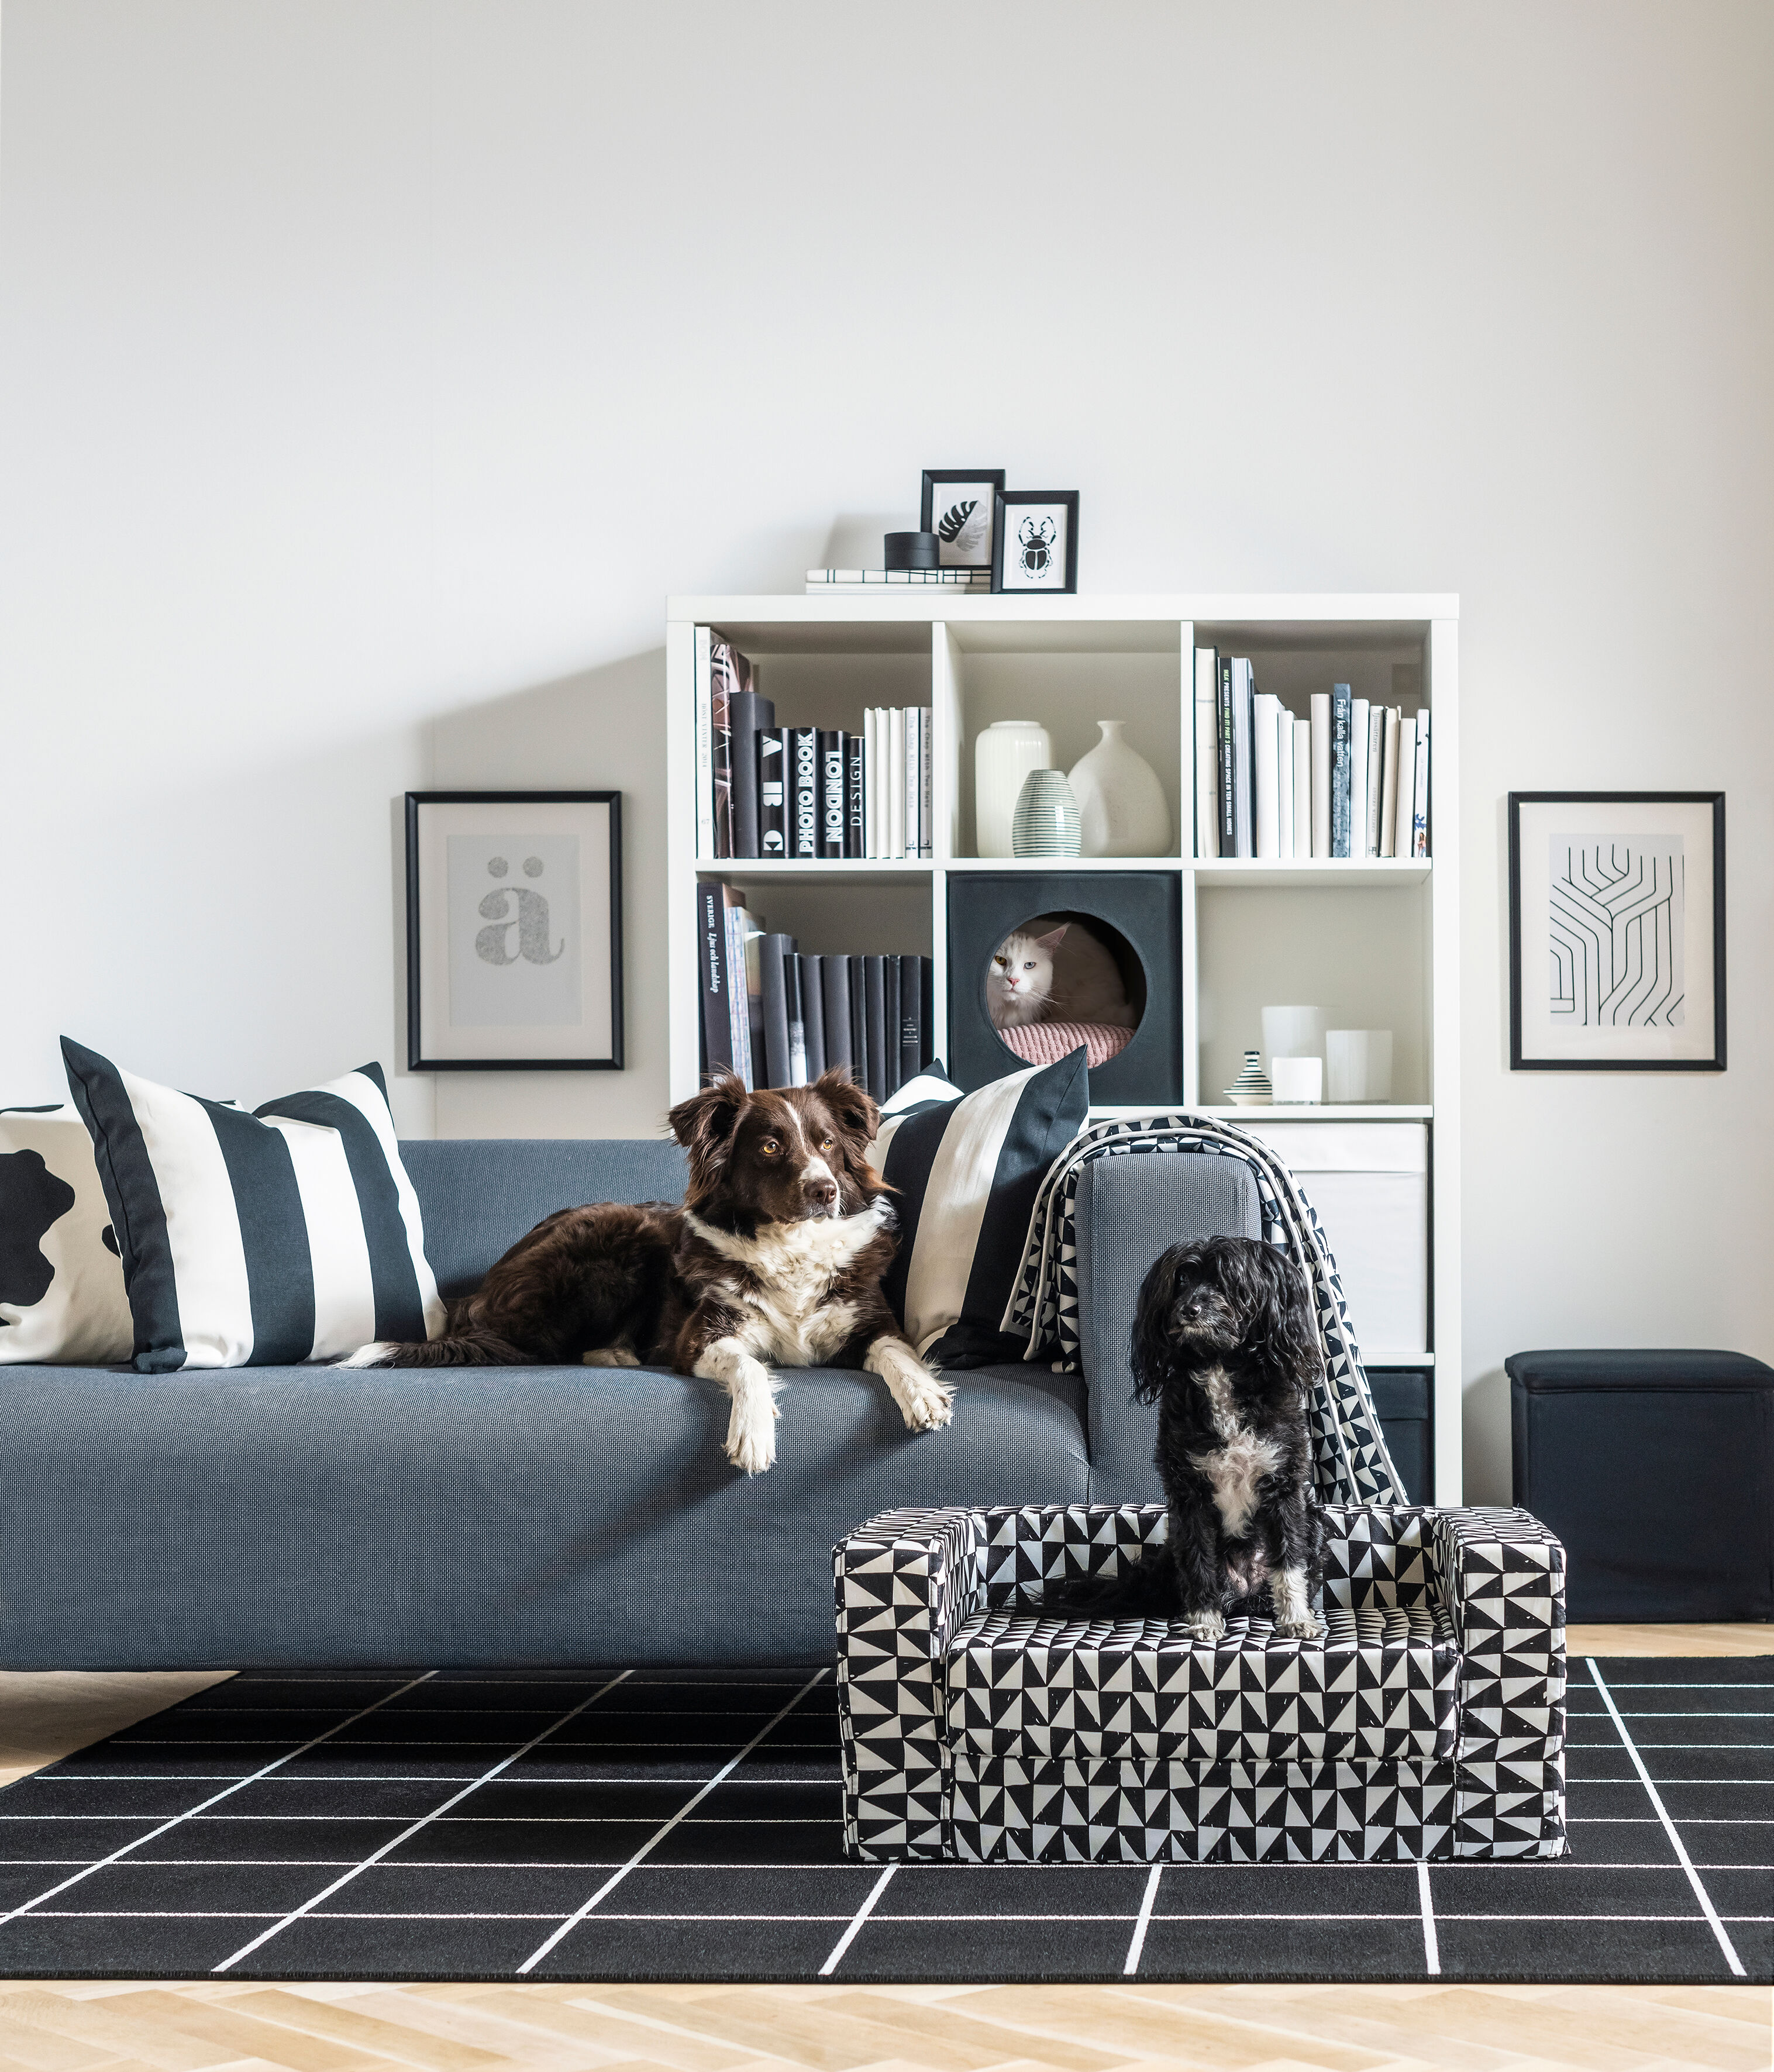 IKEA_LURVIG_PH164015